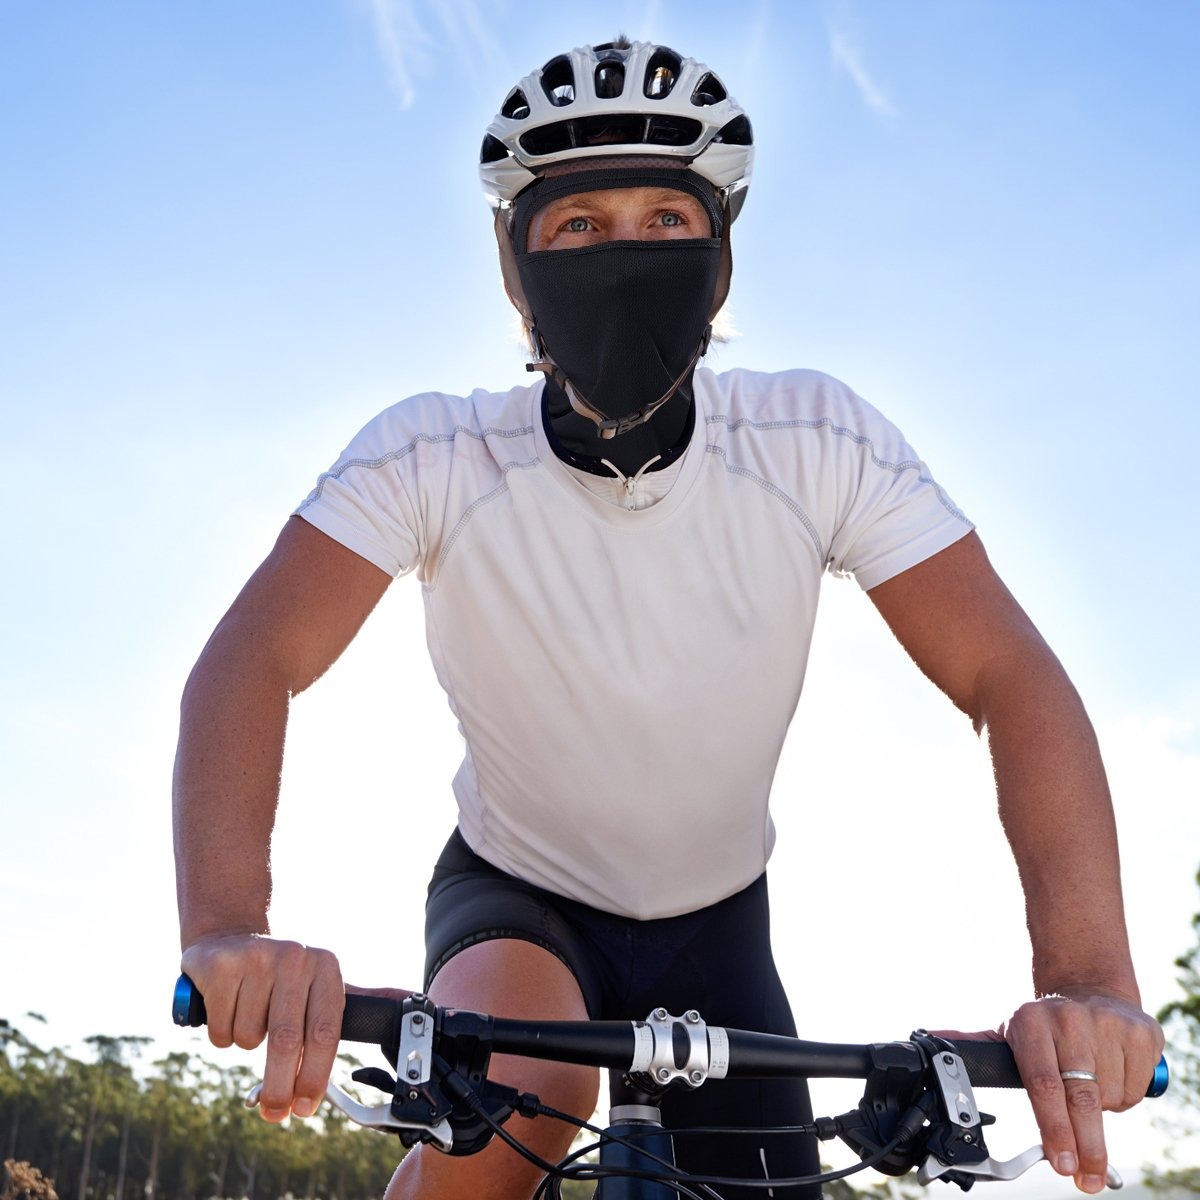 Cycling Hiking Mask for Men Women WTACTFUL Balaclava UV Protection Windproof Breathable Face Mask